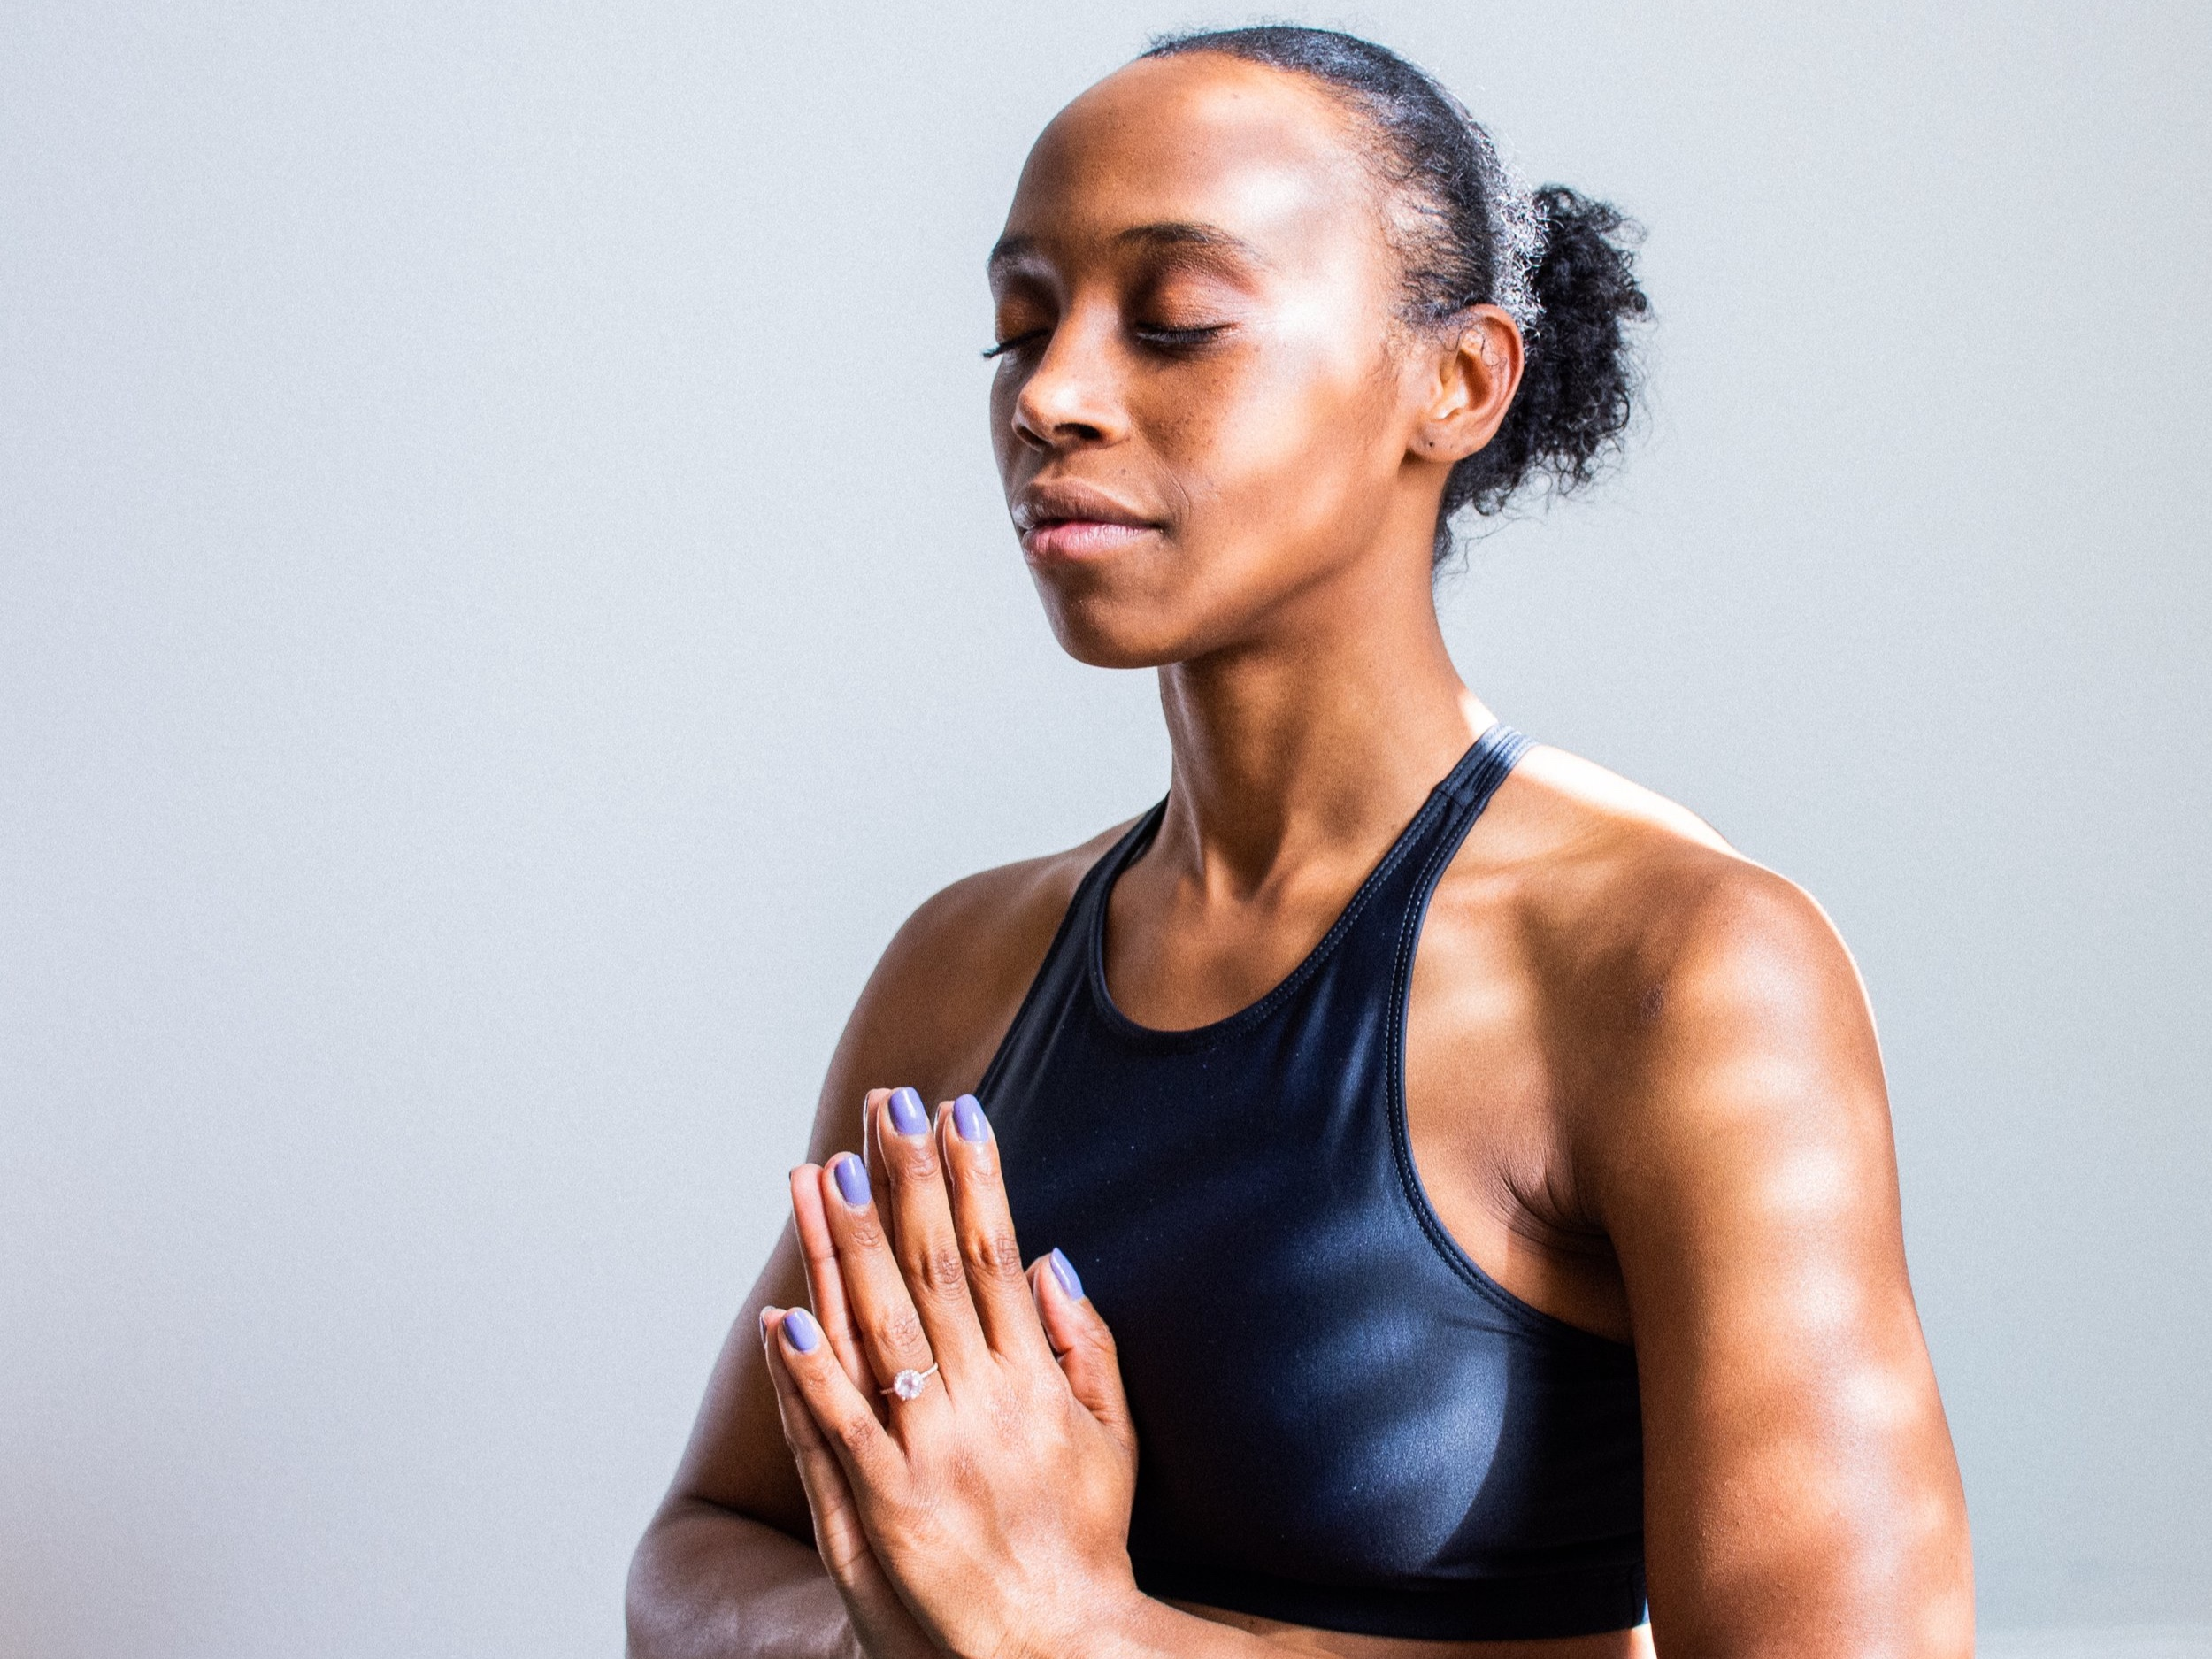 wellness pros - Whether you're a yoga teacher, group fitness instructor, personal trainer, nutritionist, or energy healer - helping others live happier healthier lives is your jam. You are committed to bringing out the strength in your clients, and want to spread your sweaty good vibes to the world.